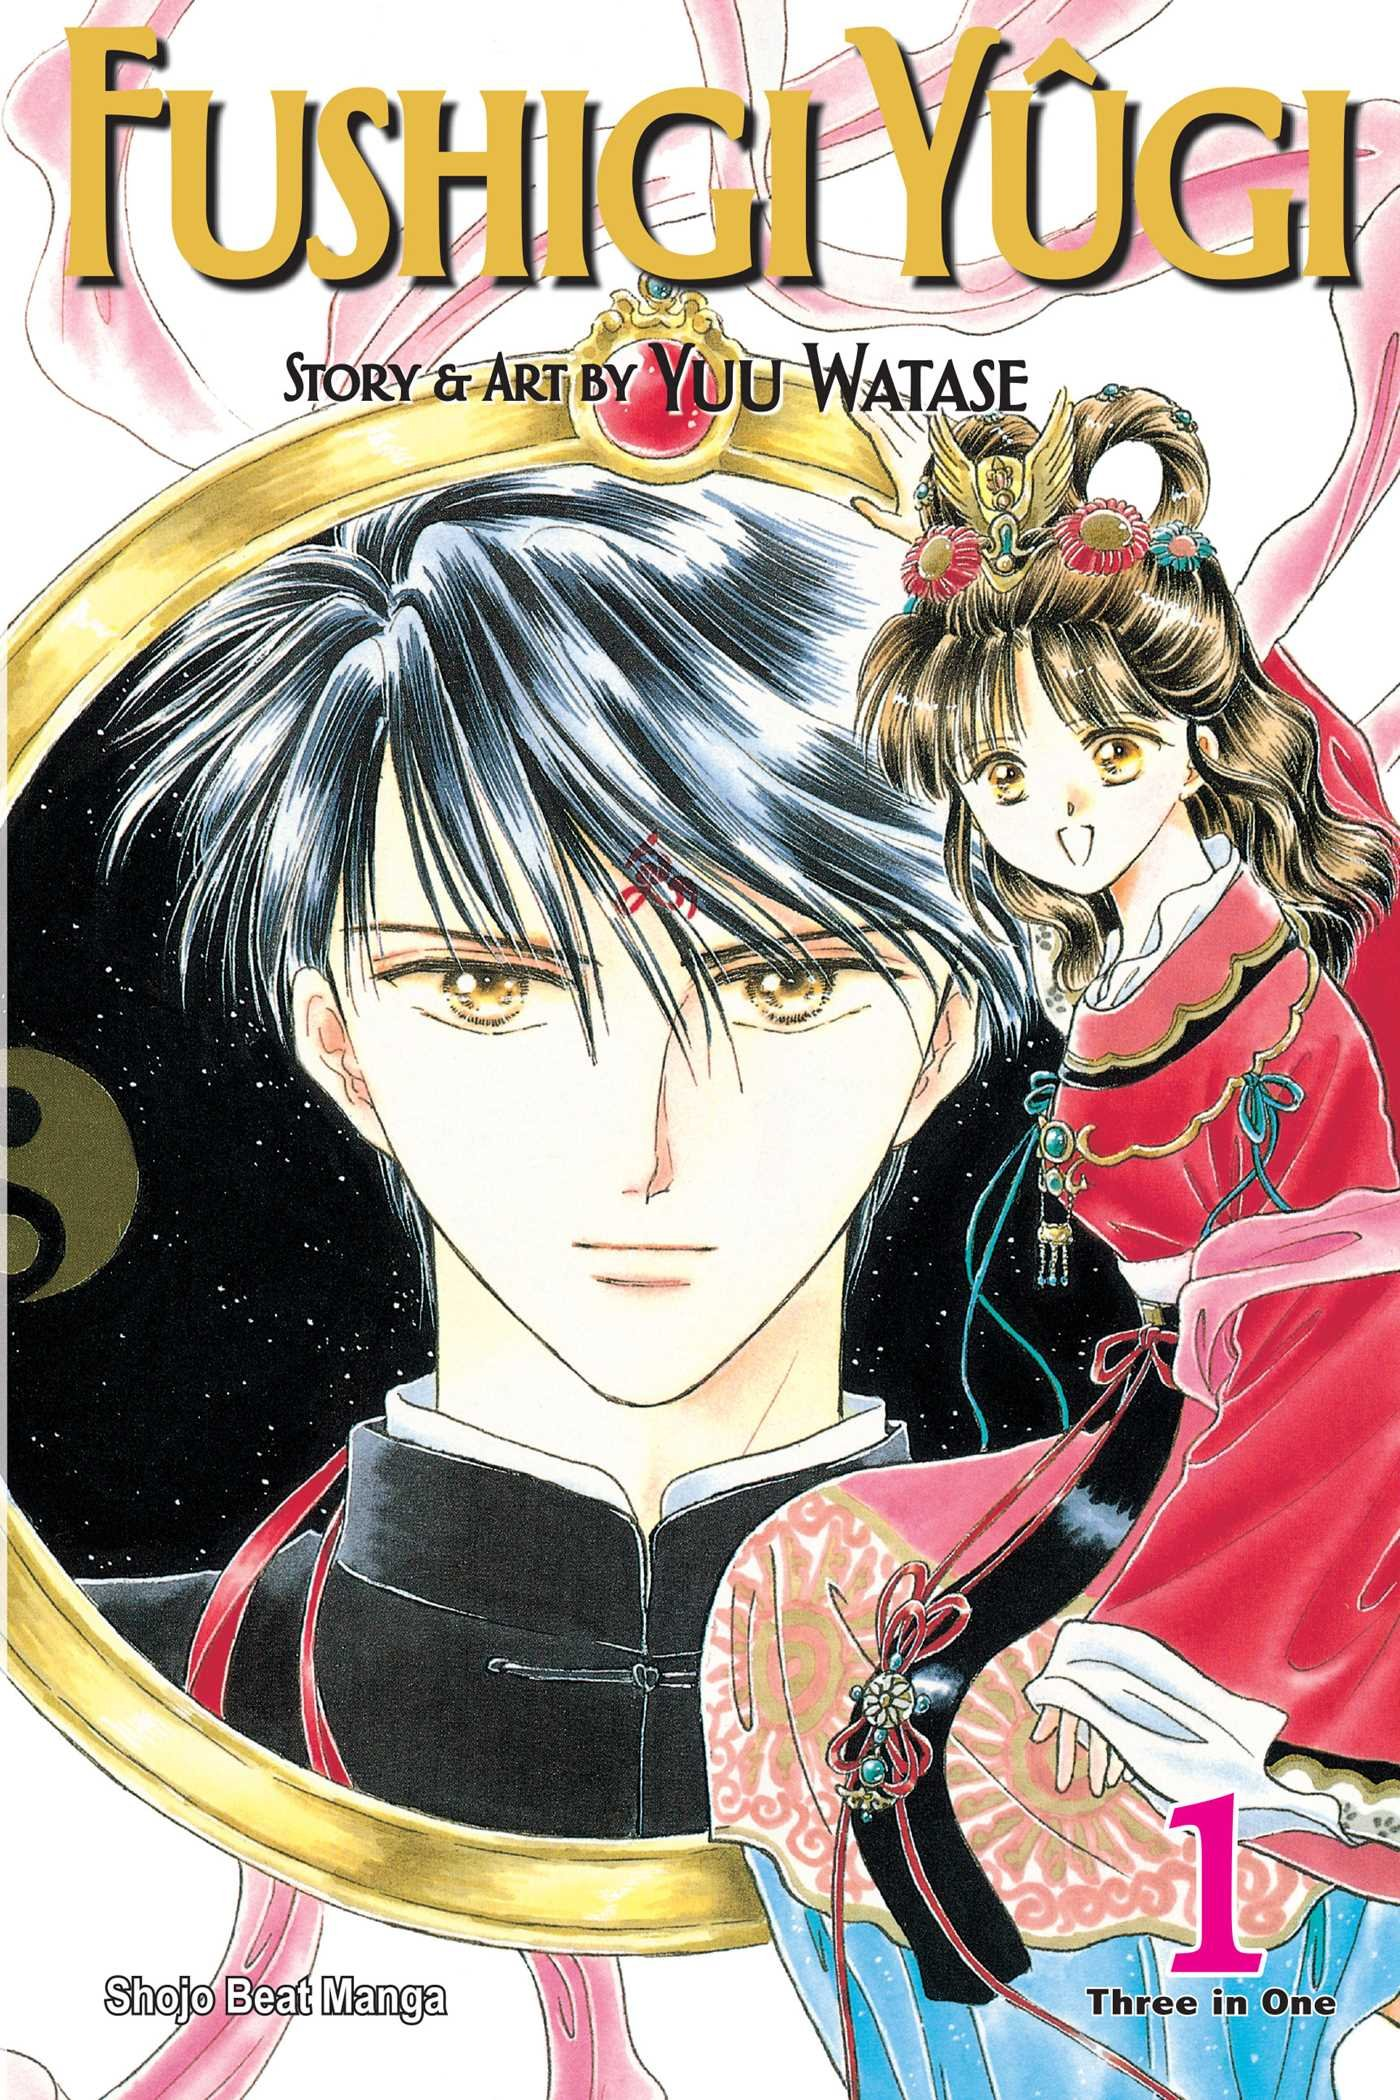 Image result for fushigi yuugi manga cover vol 1